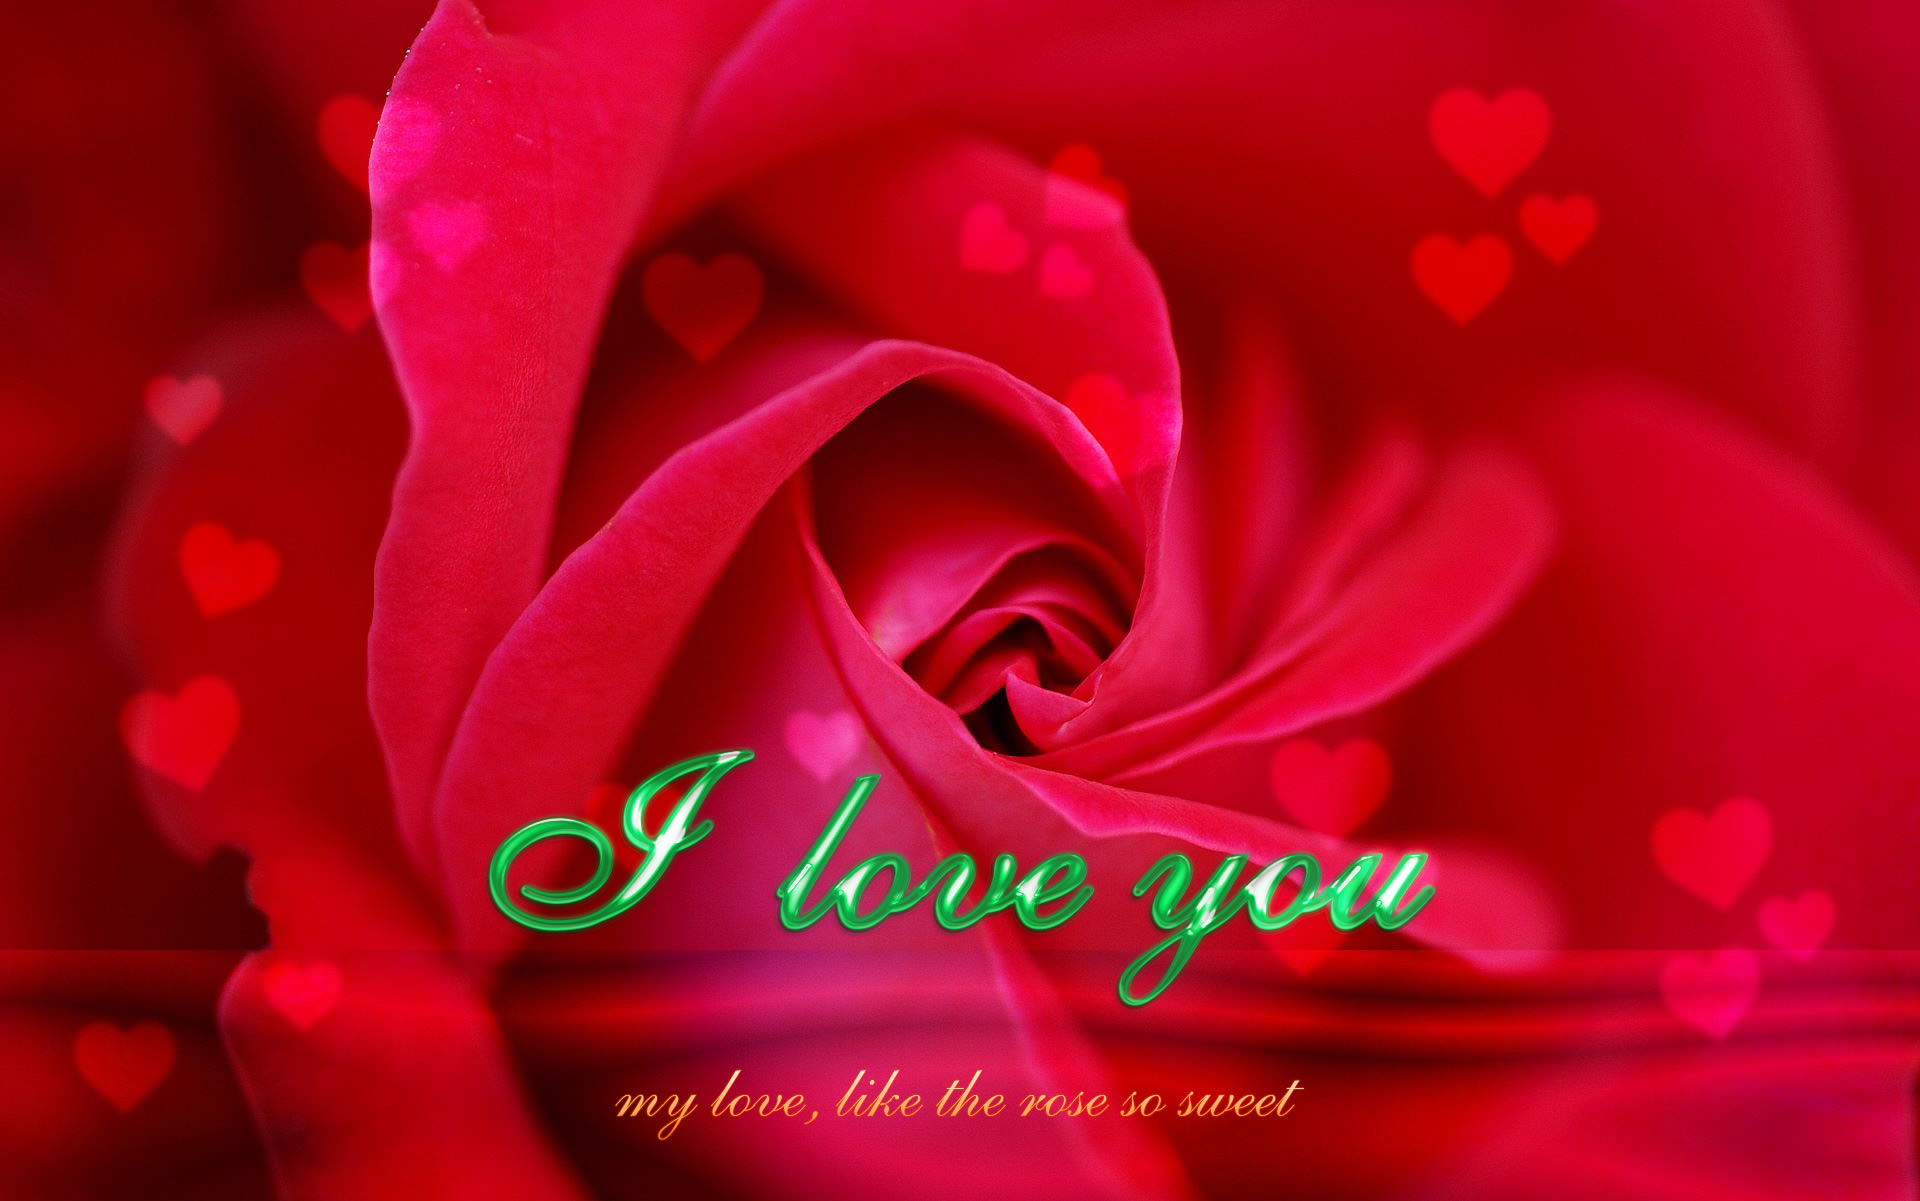 Gm My Love Wallpaper : My Love Wallpaper - WallpaperSafari